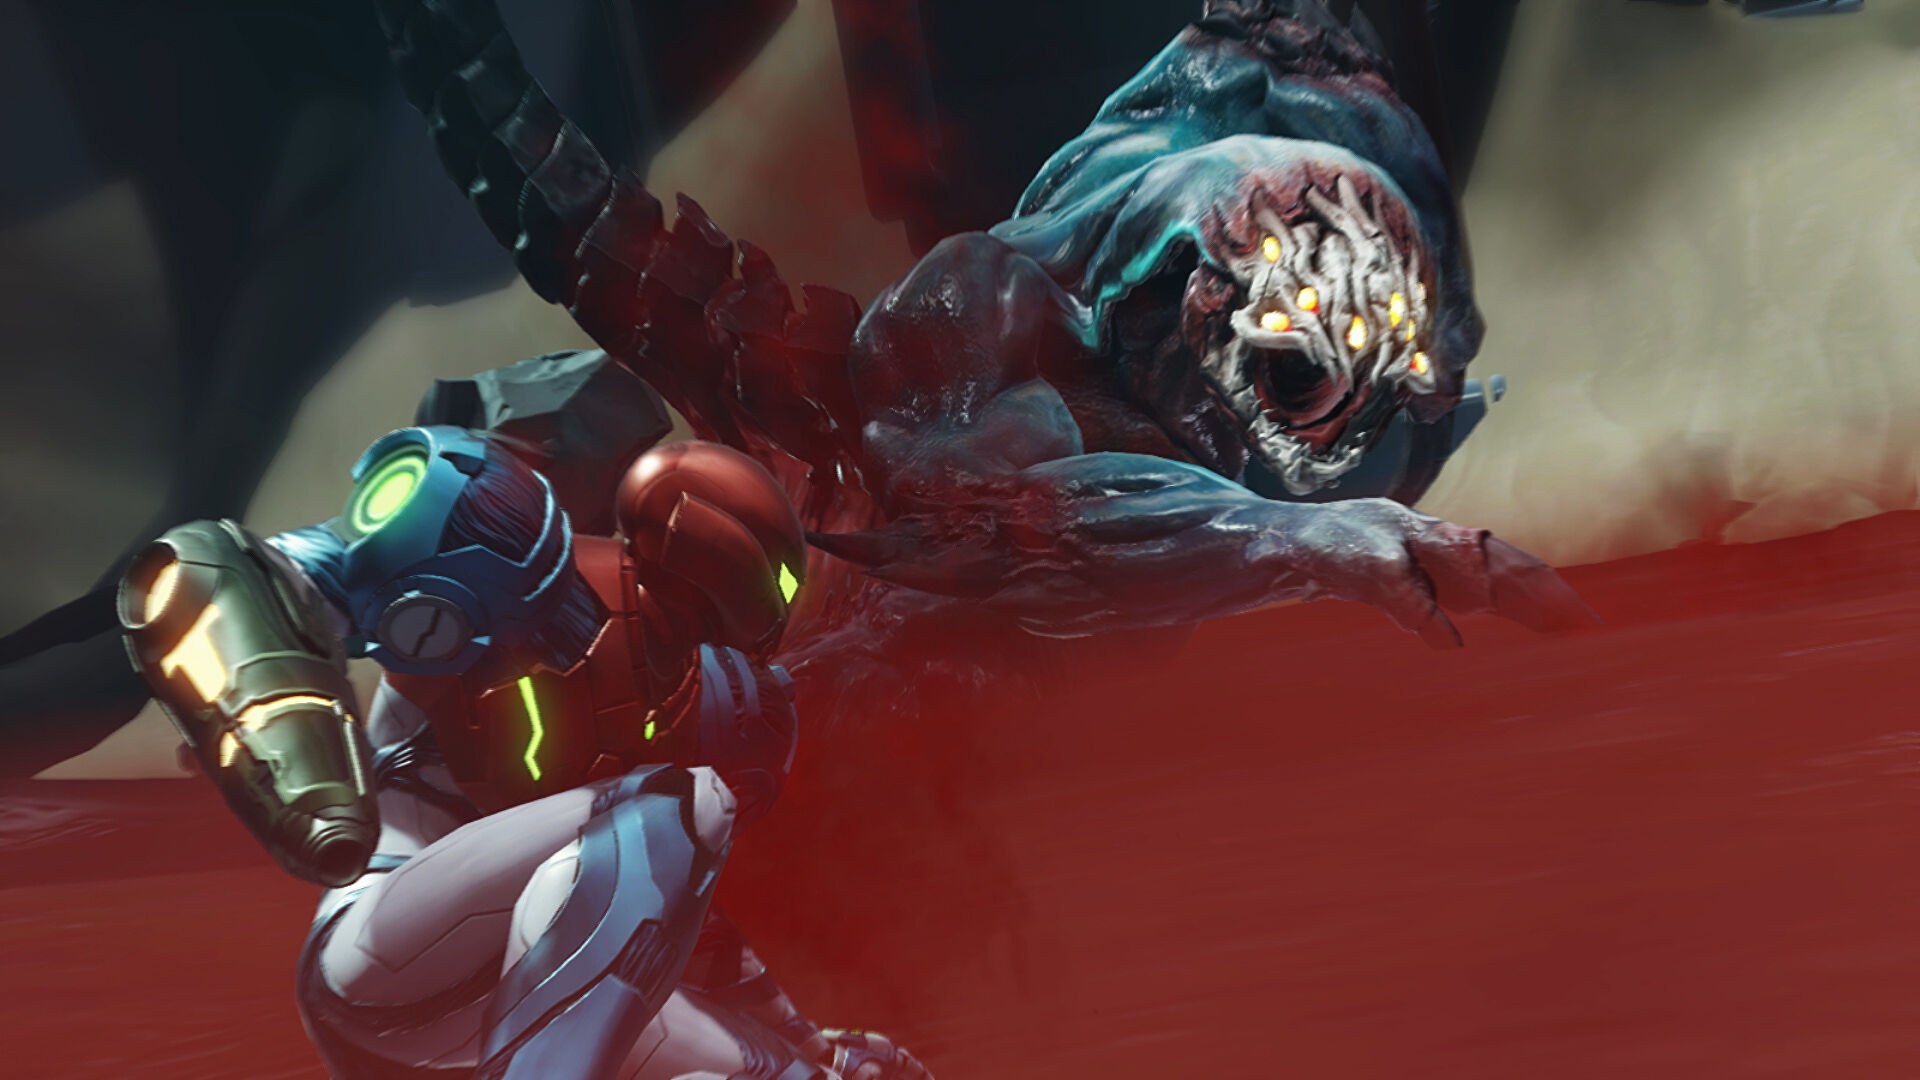 Progress-blocking bug found in Metroid Dread, but you can avoid it